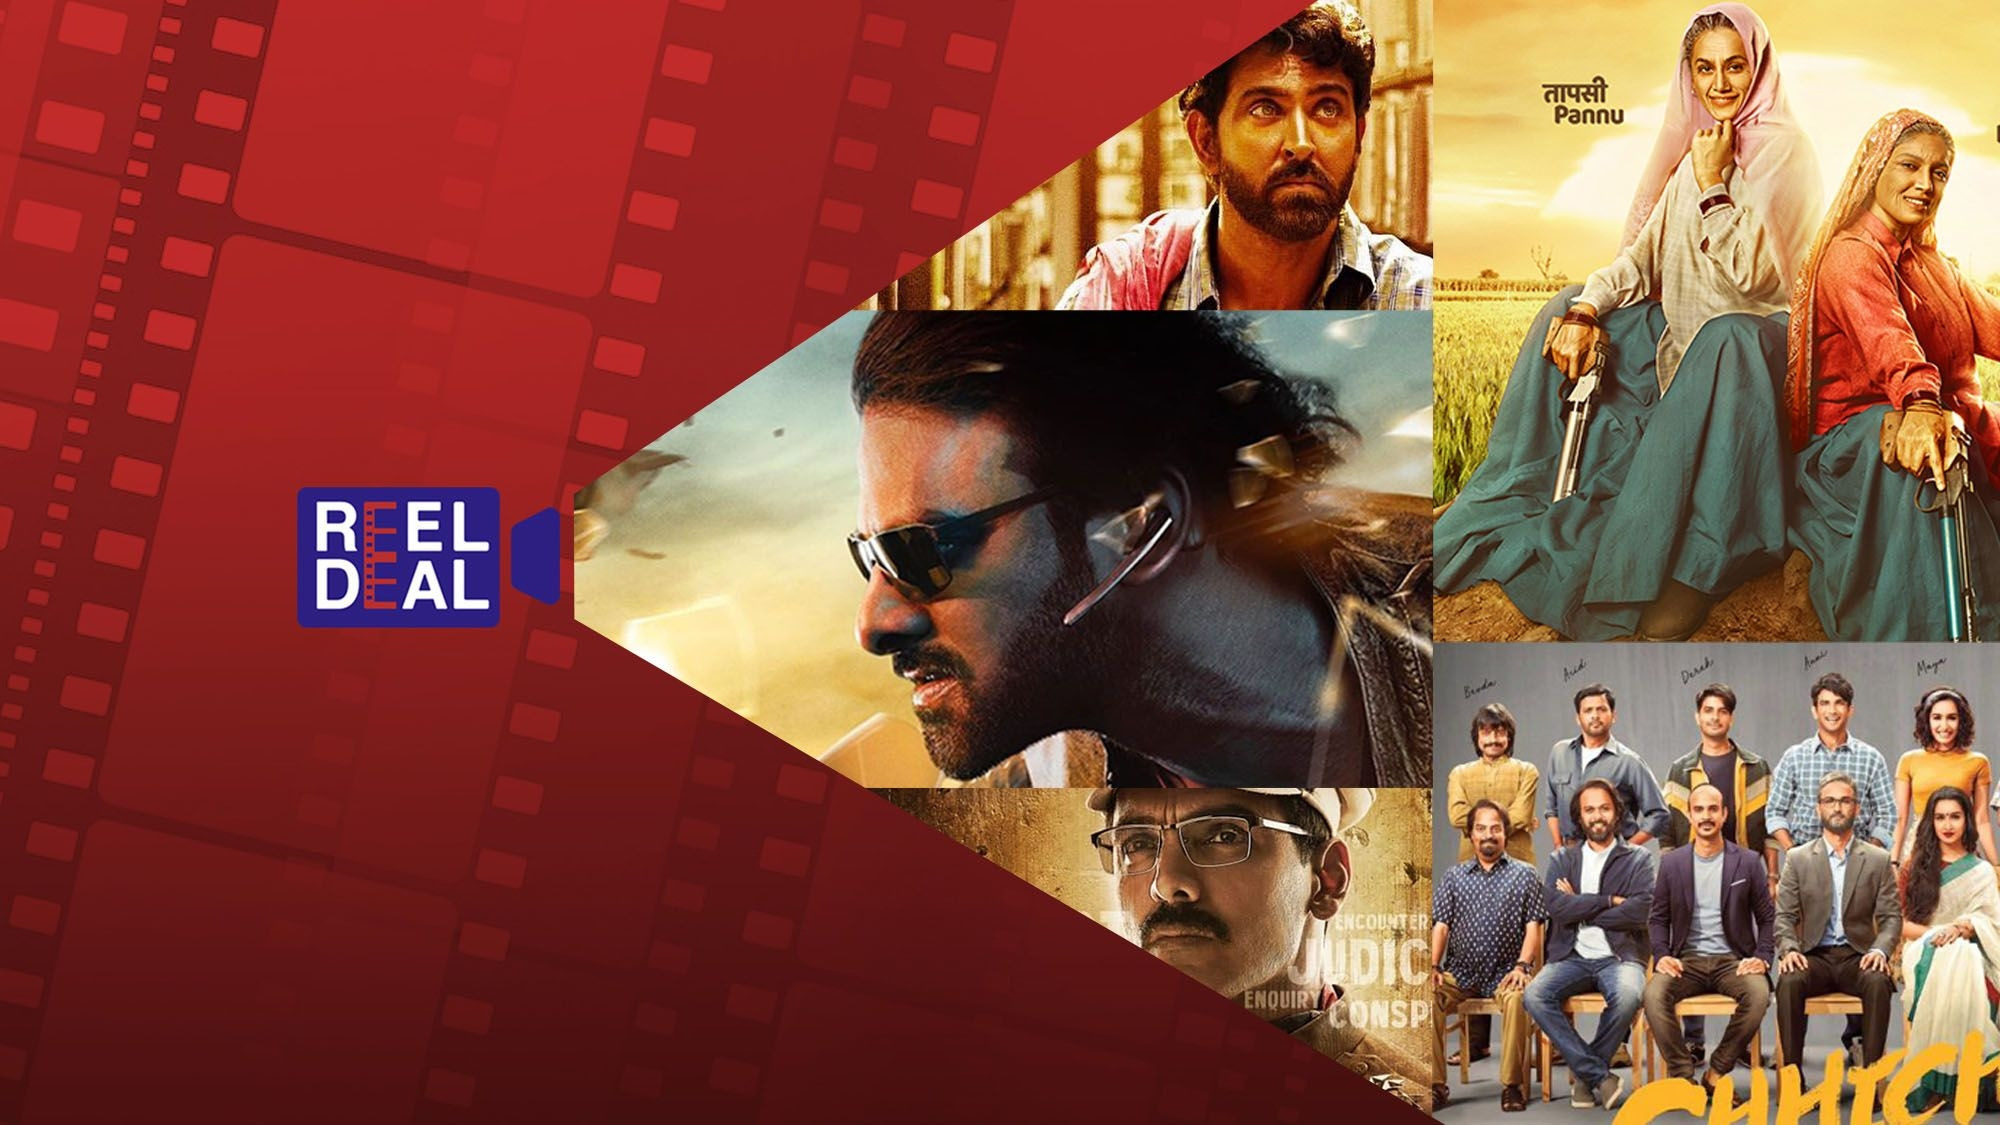 Reel Deal: Bollywood Films to Look Forward to in 2nd Half of 2019